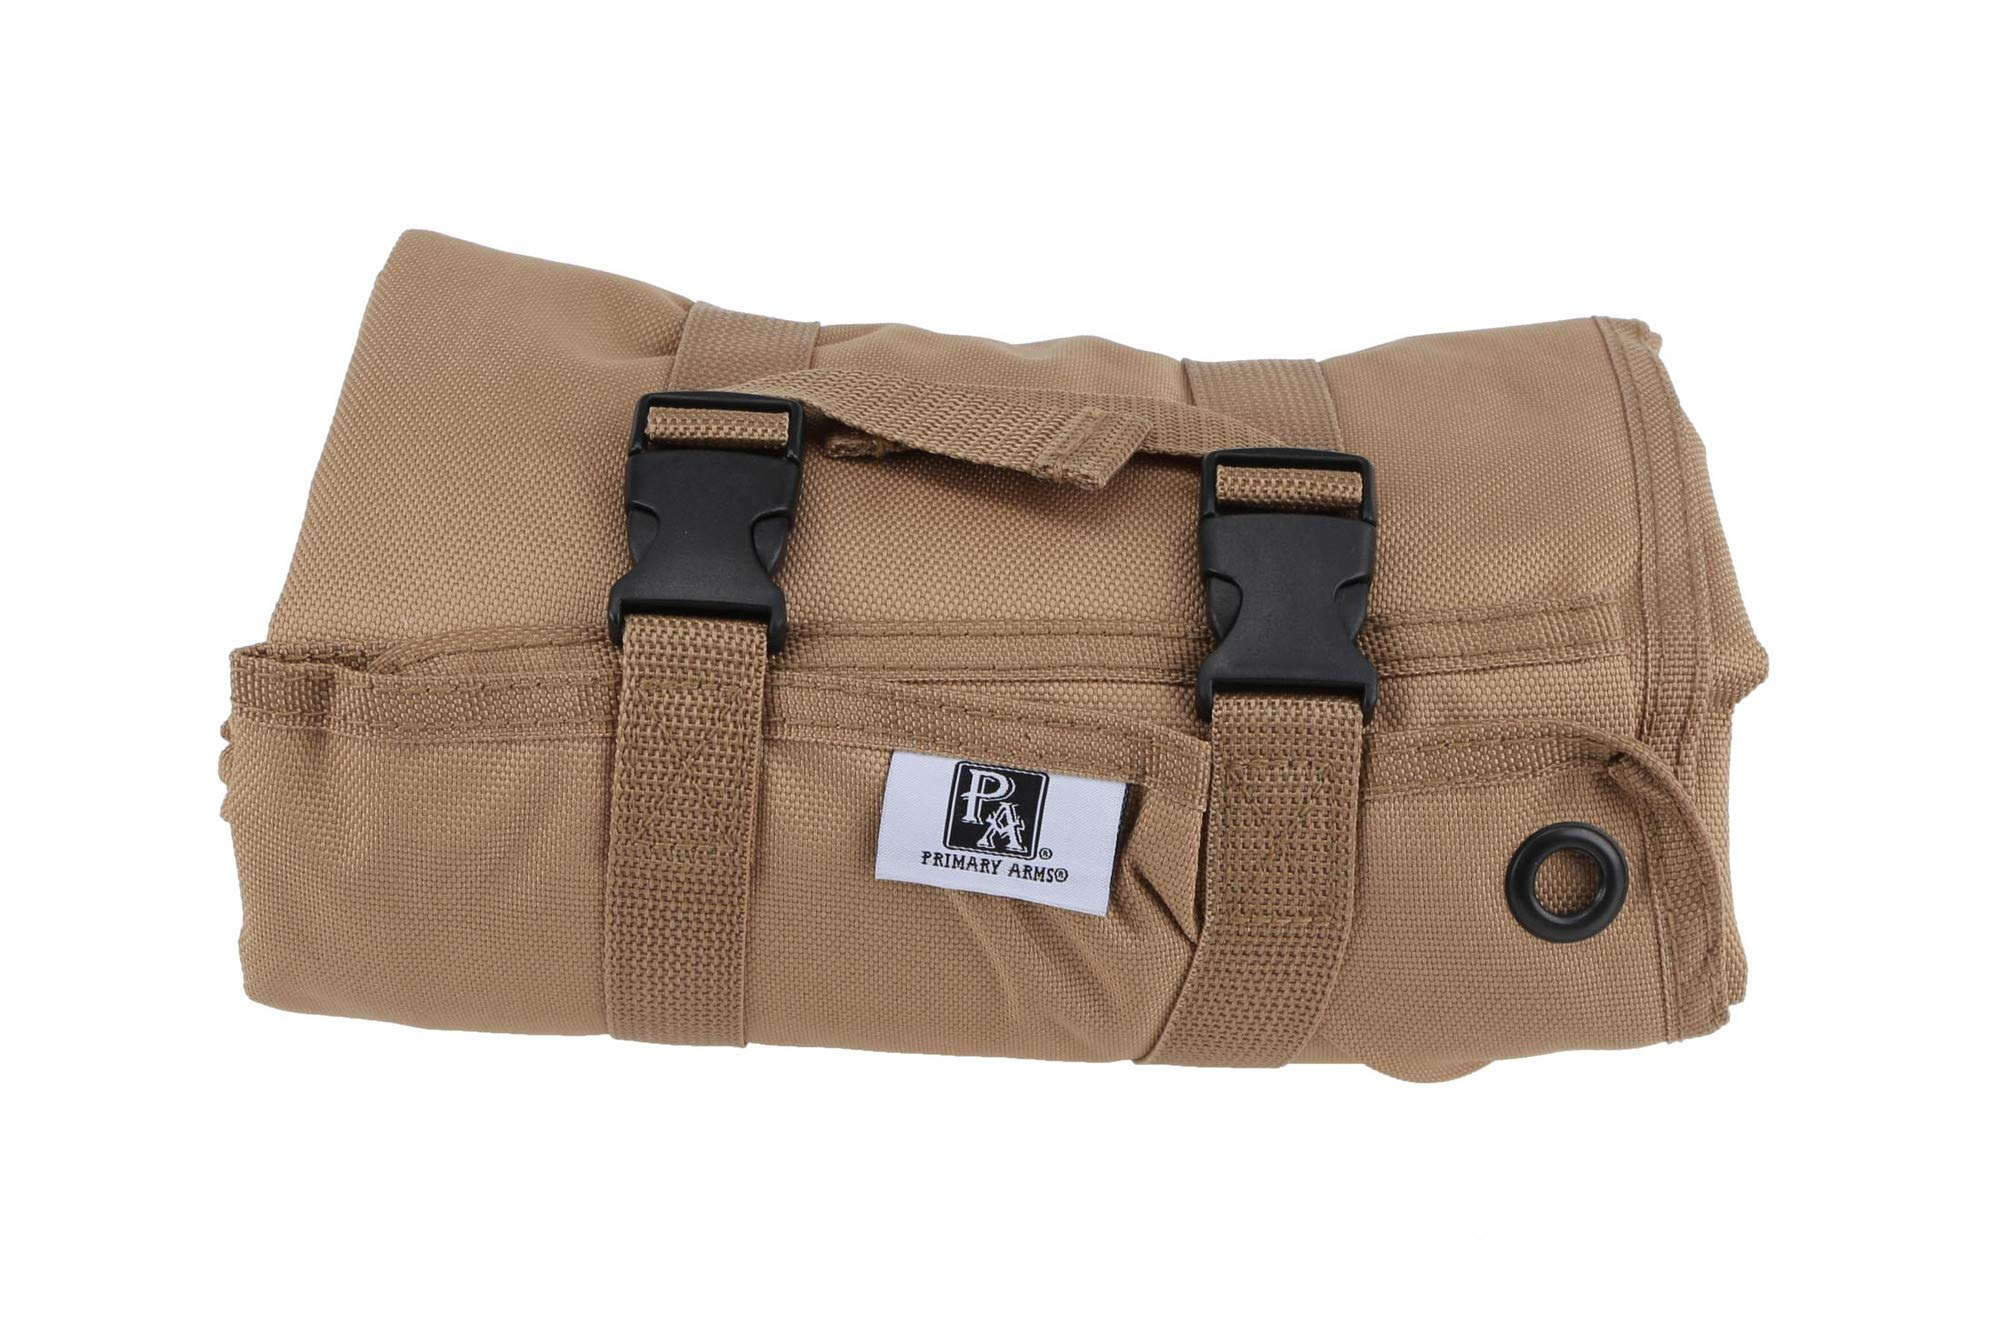 Primary Arms Roll Up Shooting Mat (FDE) - Waterproof, Anti-Bacterial Coating, 72'' L x 30''